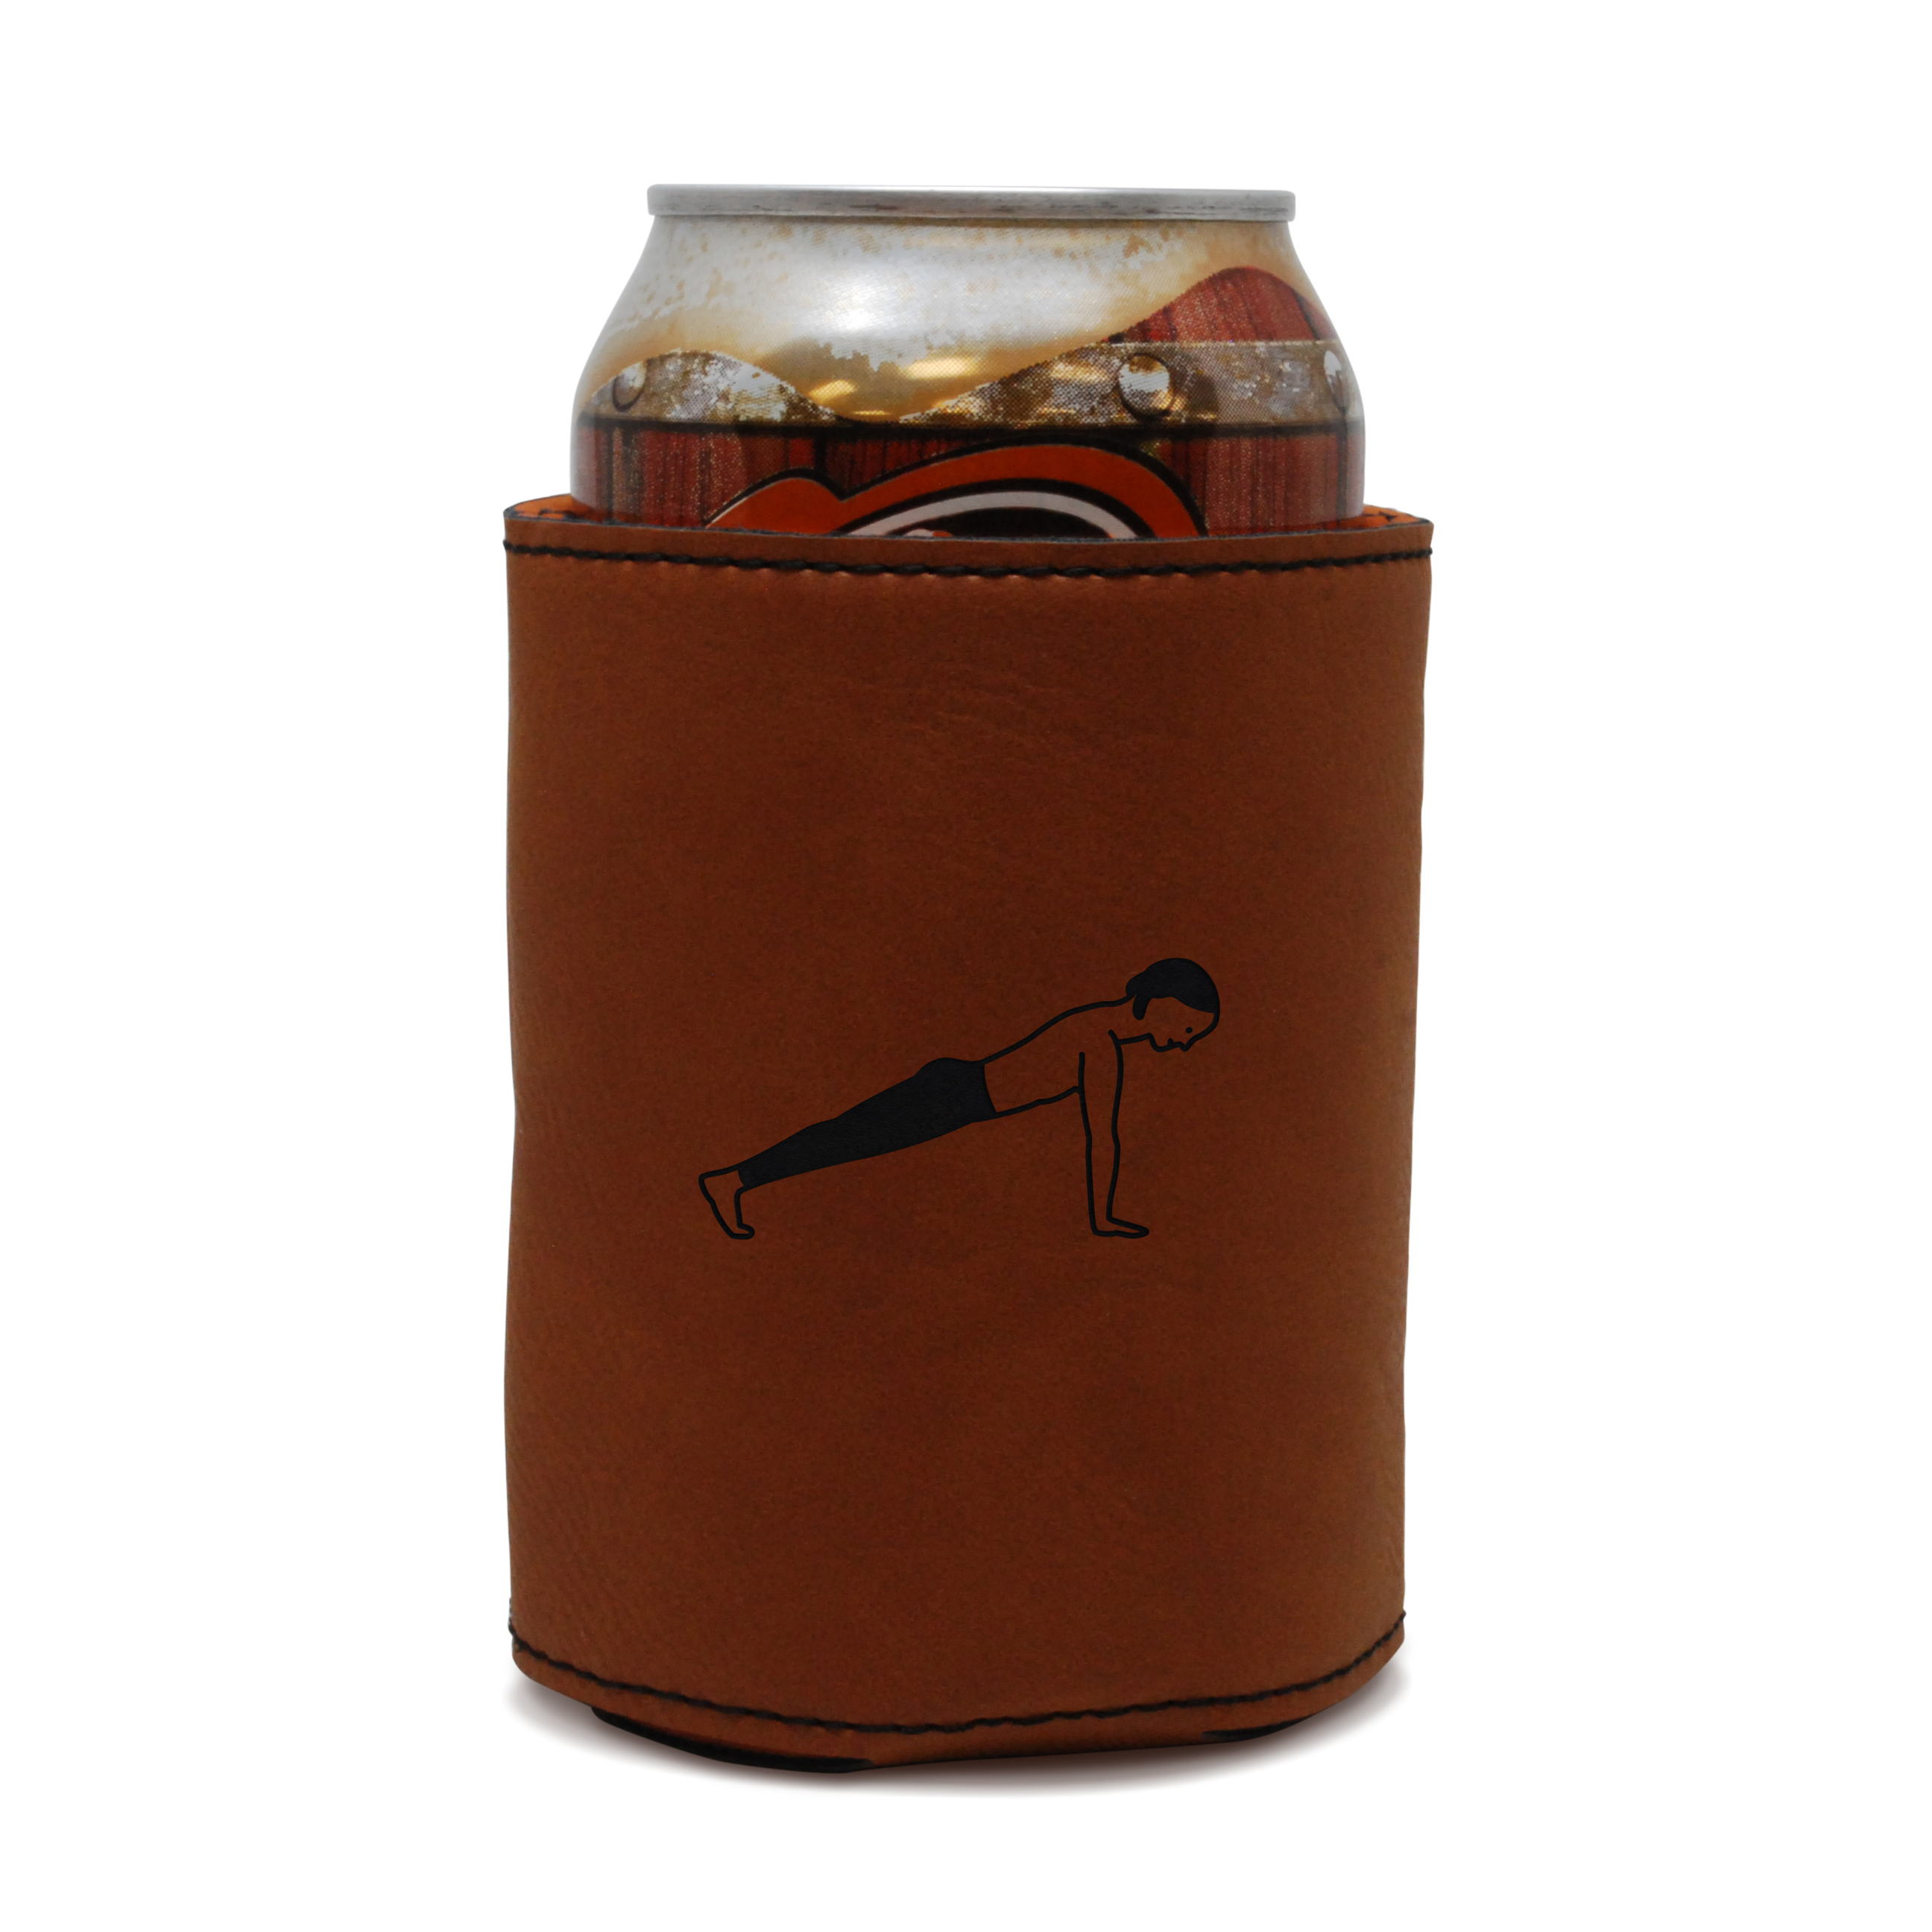 Plank Leather Can Sleeve, Beer Sleeve, Beer Cooler, Beer Hugger